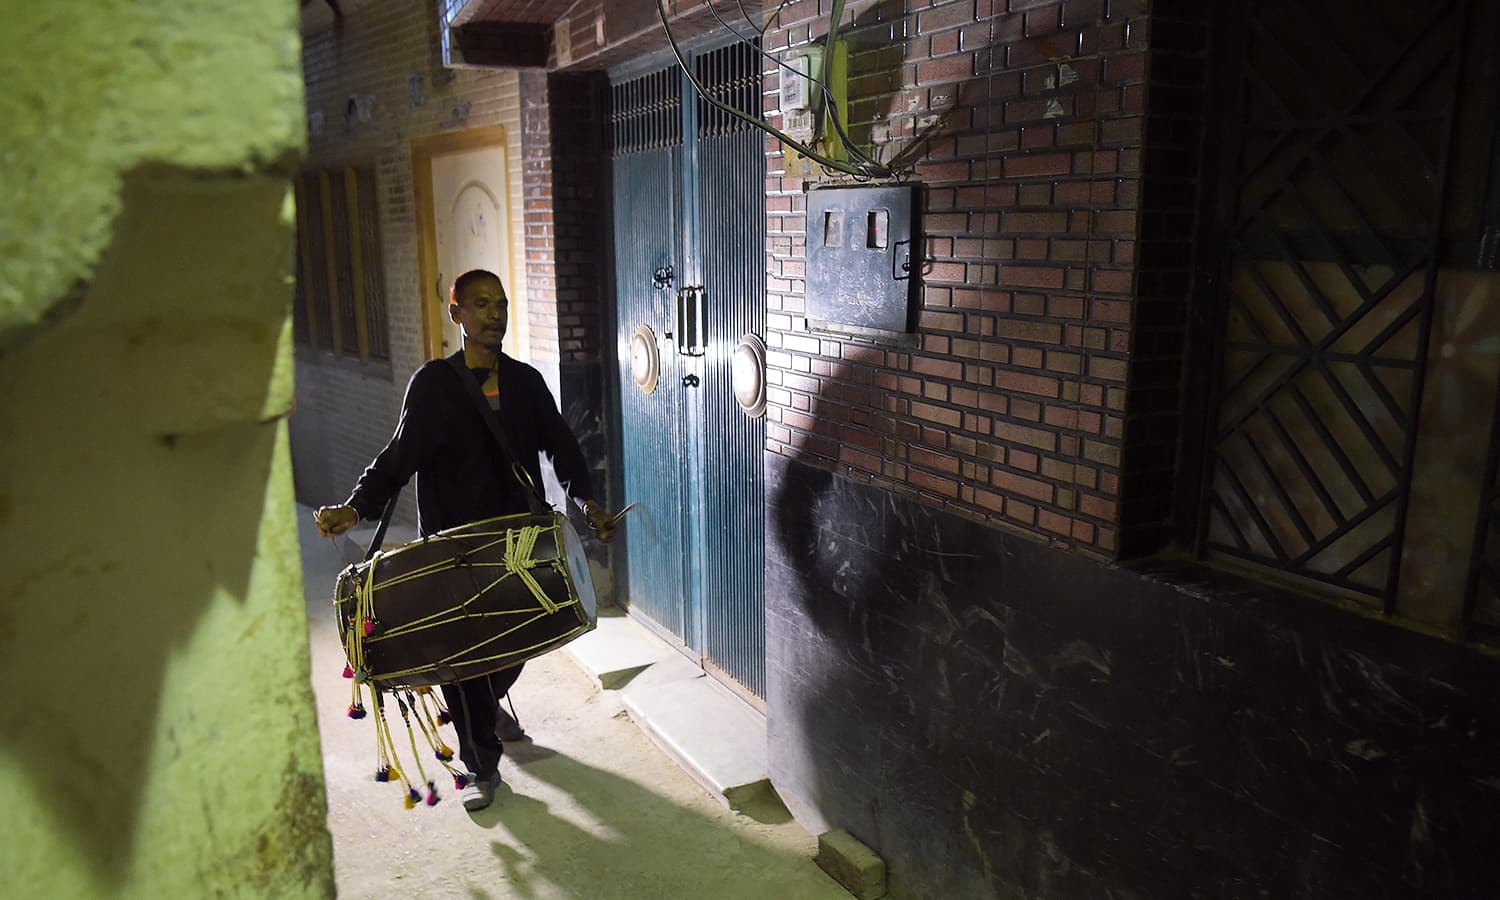 Lal Hussain roams on streets of a residential area, waking people up for sehri by his drum beats. — AFP